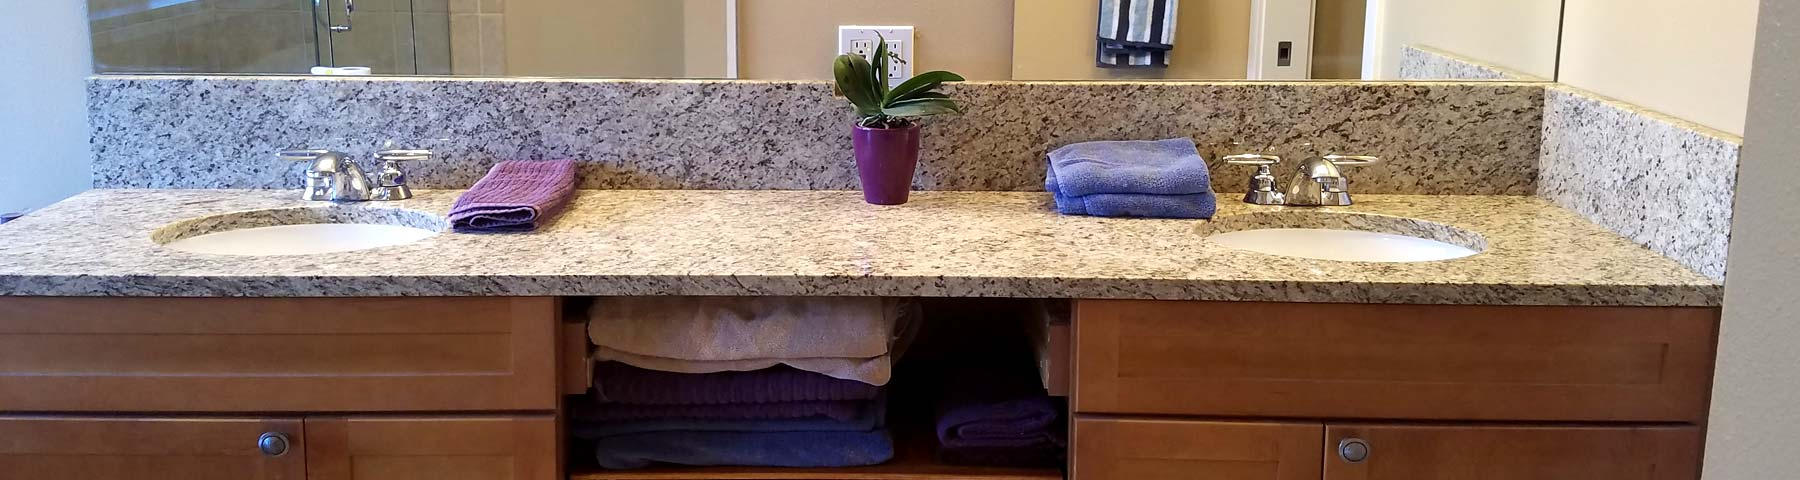 Custom Countertop Projects Seattle